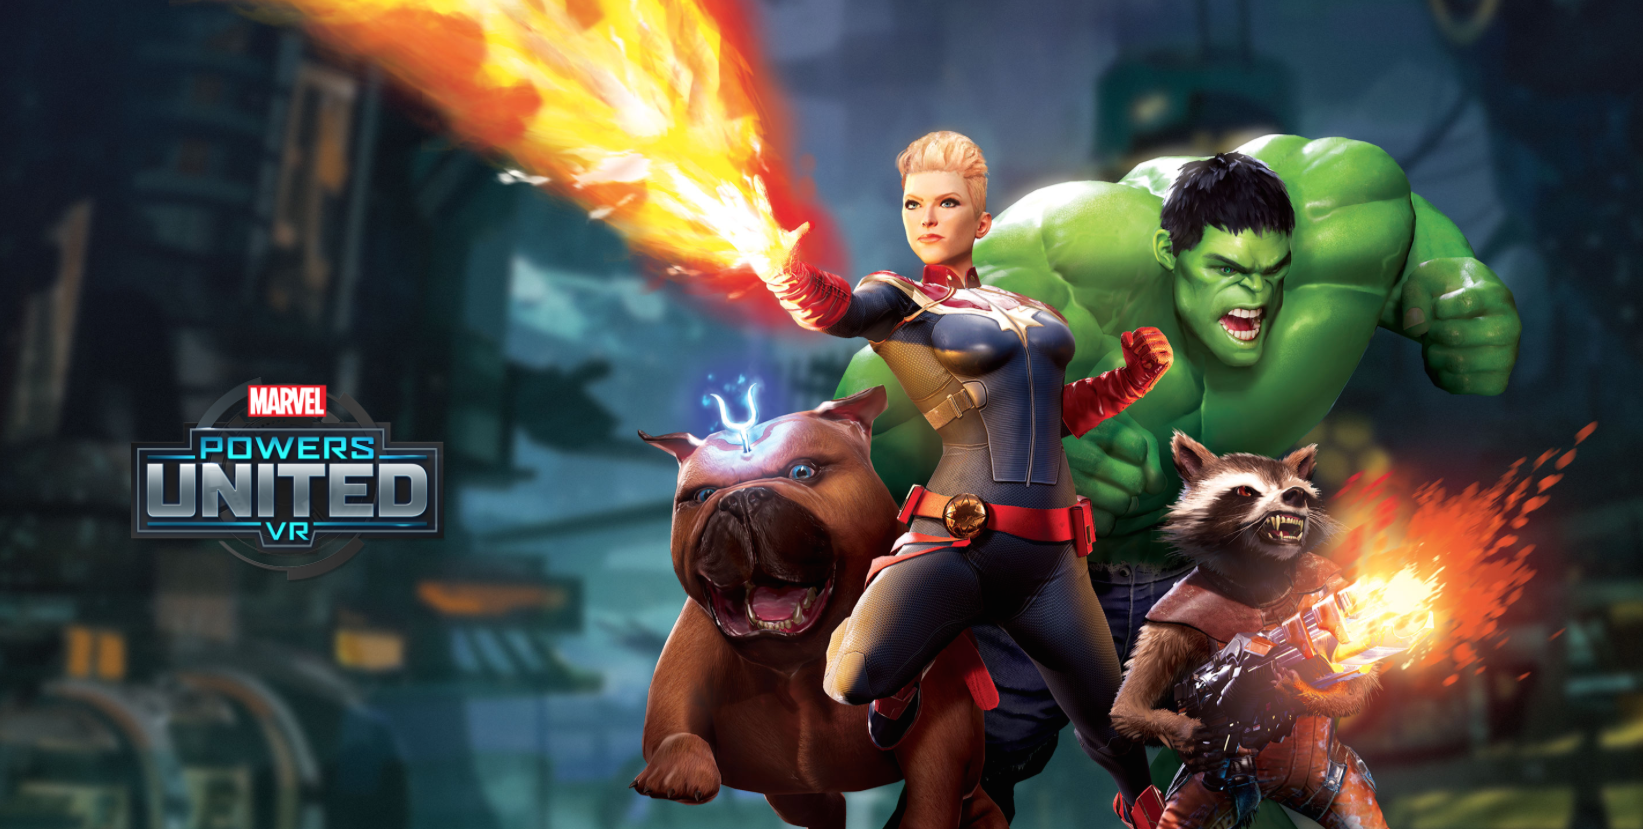 Marvel Powers United VR coming to Oculus Rift